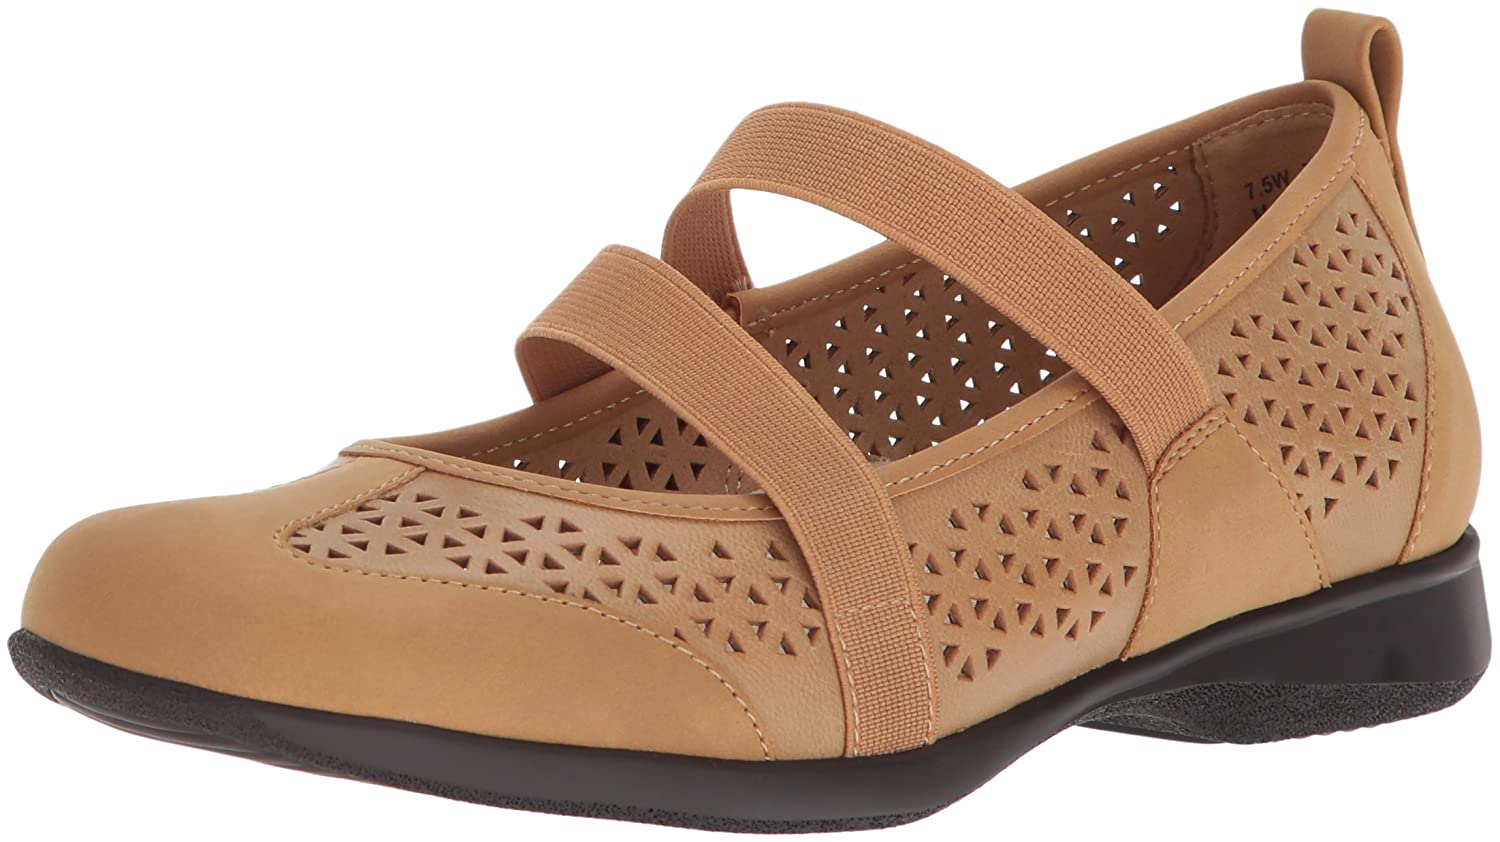 Trotters Women's Josie Mary Jane Flat B073C51QCK 10 B(M) US|Tan